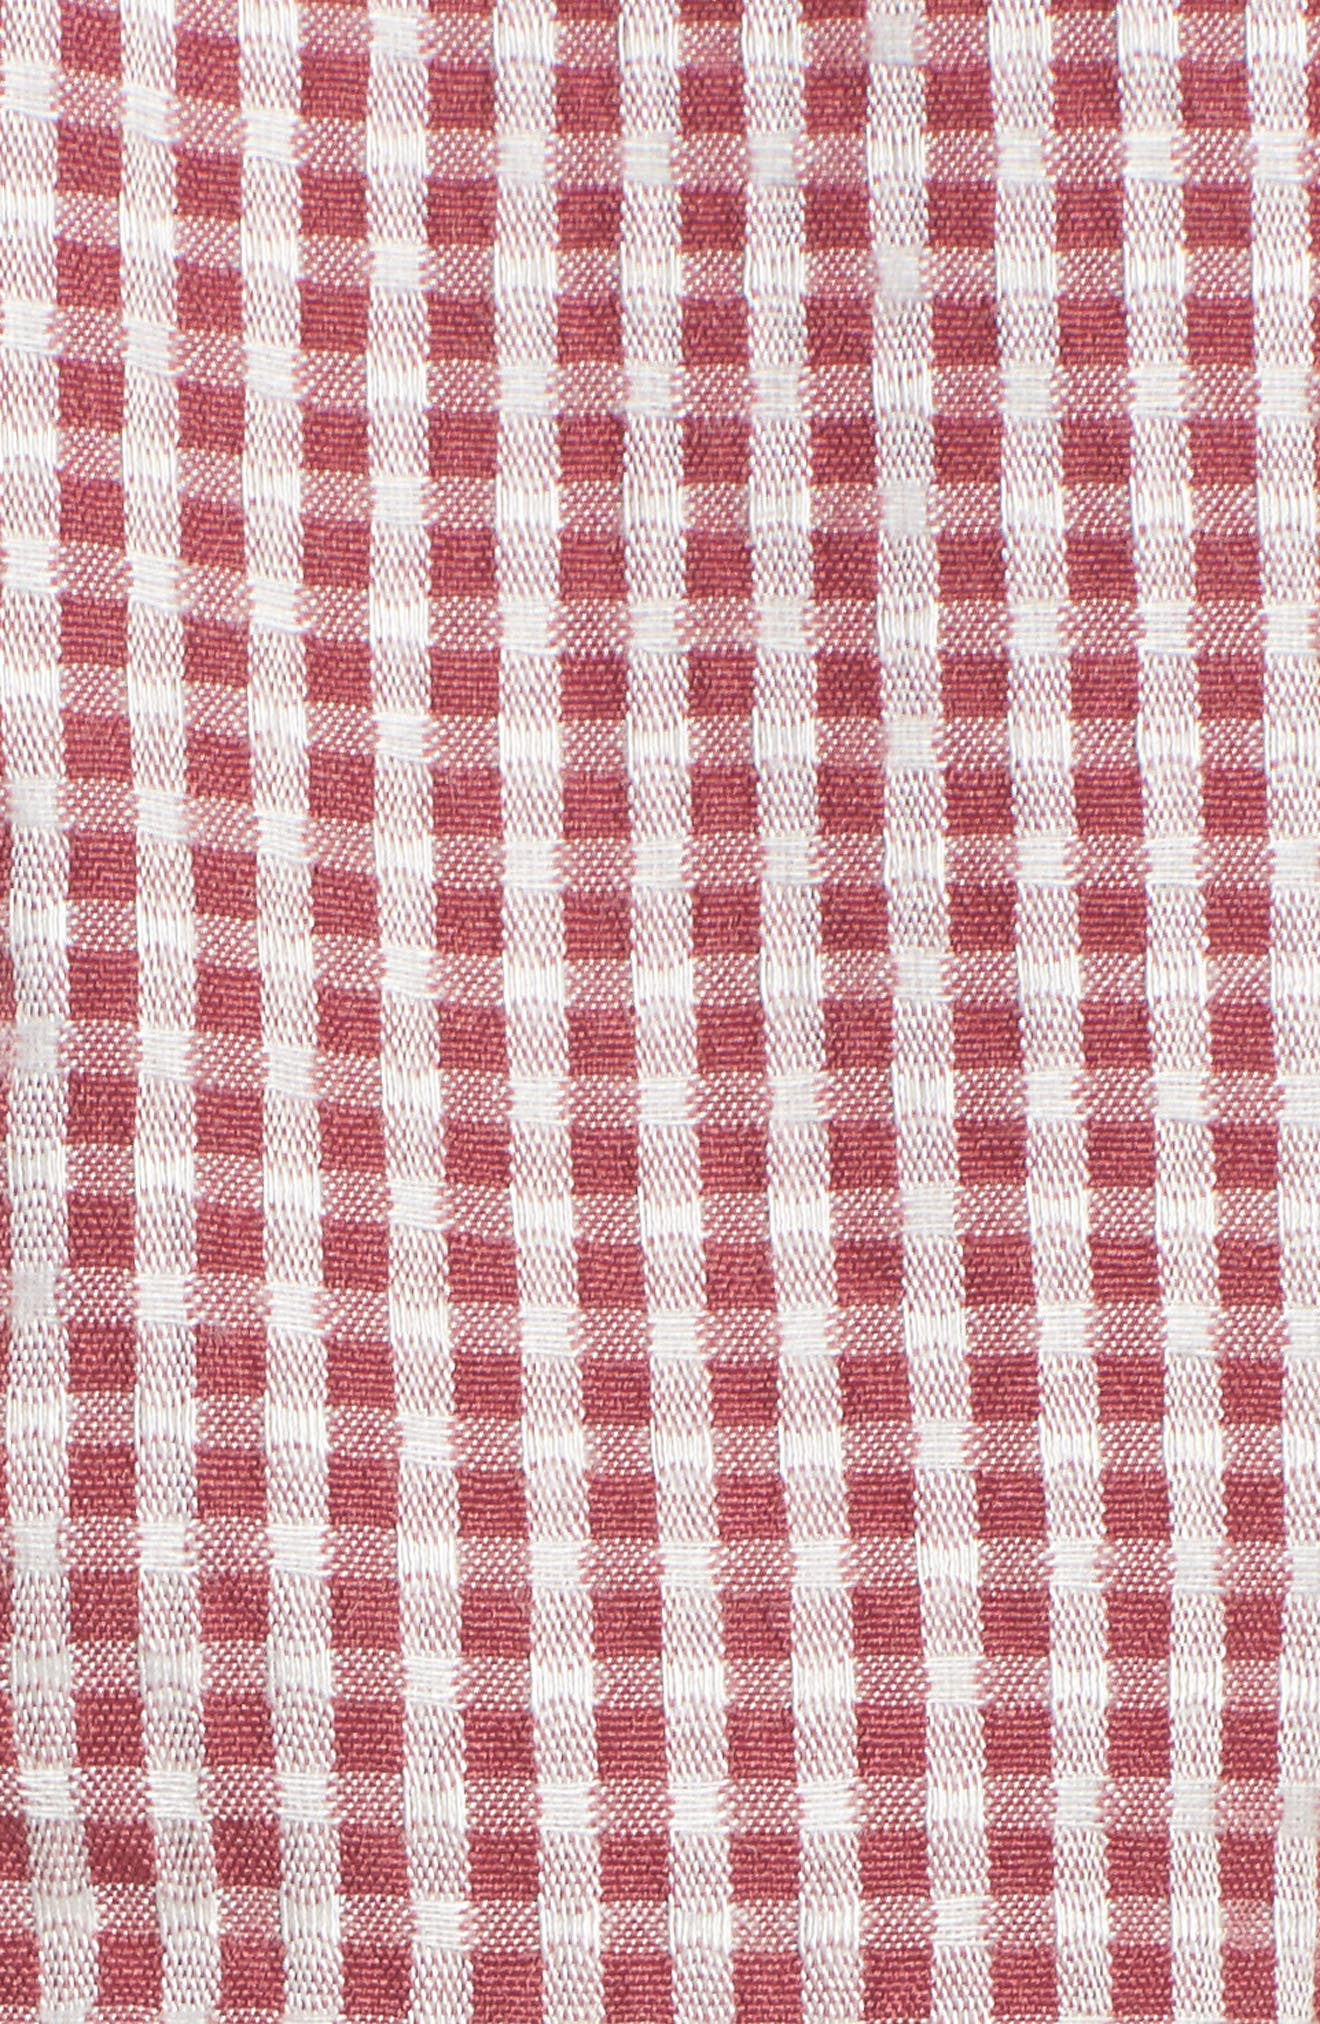 Digby Tie Front Crop Top,                             Alternate thumbnail 7, color,                             Red Gingham